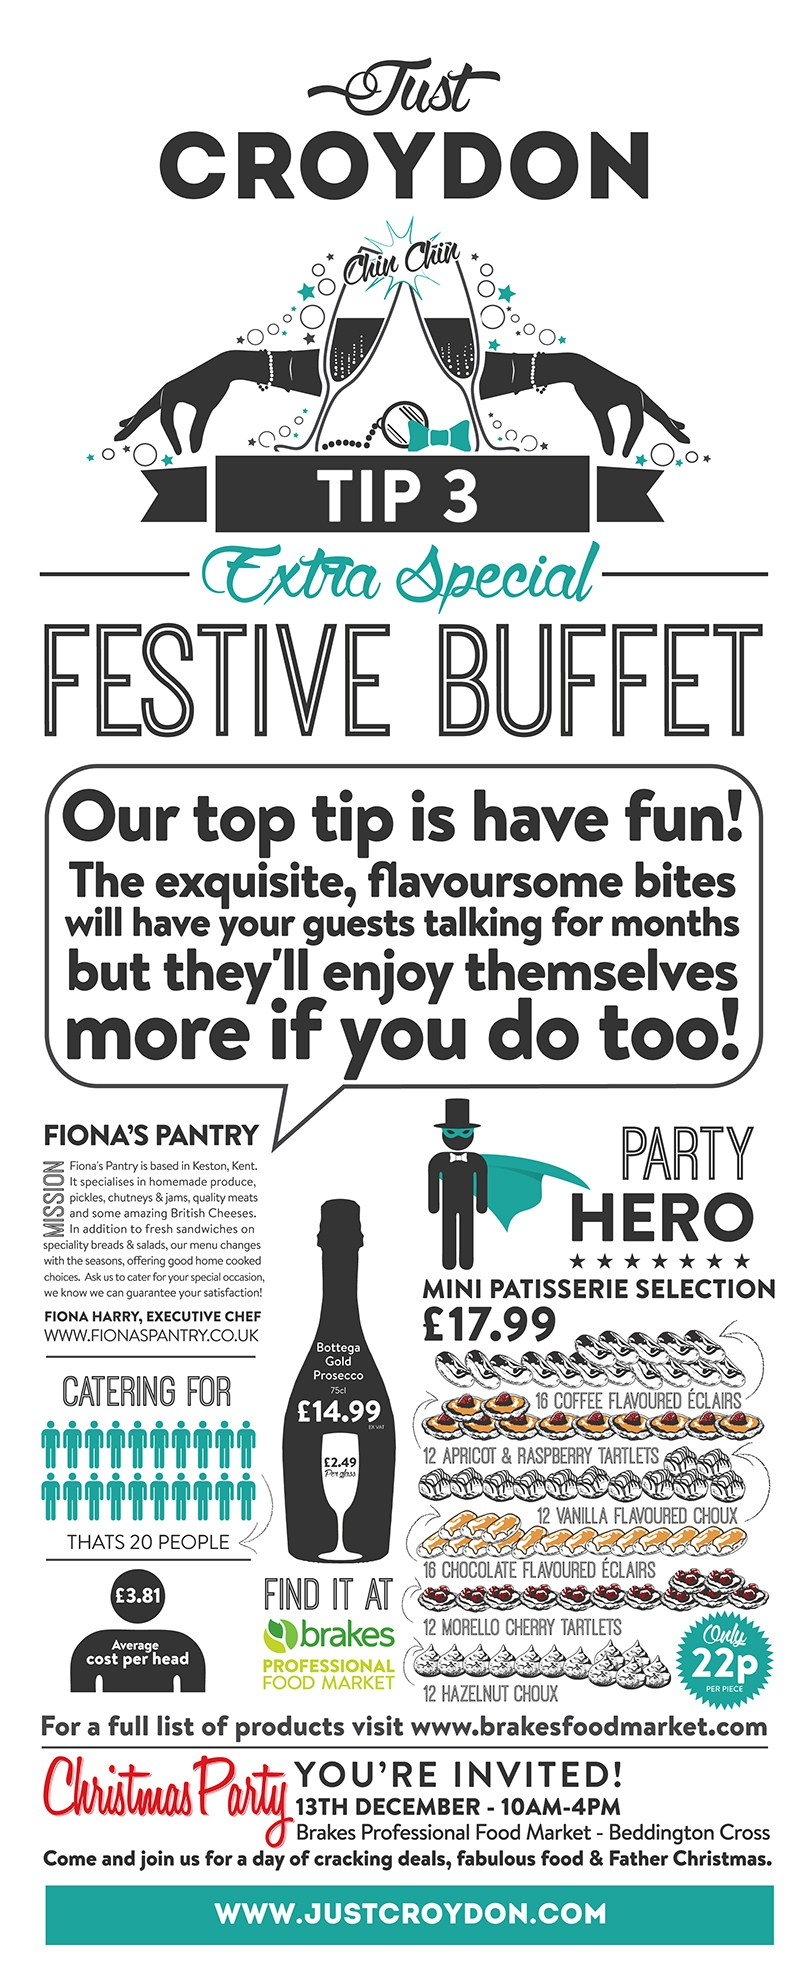 Party Tip 3: Extra Special Festive Buffet